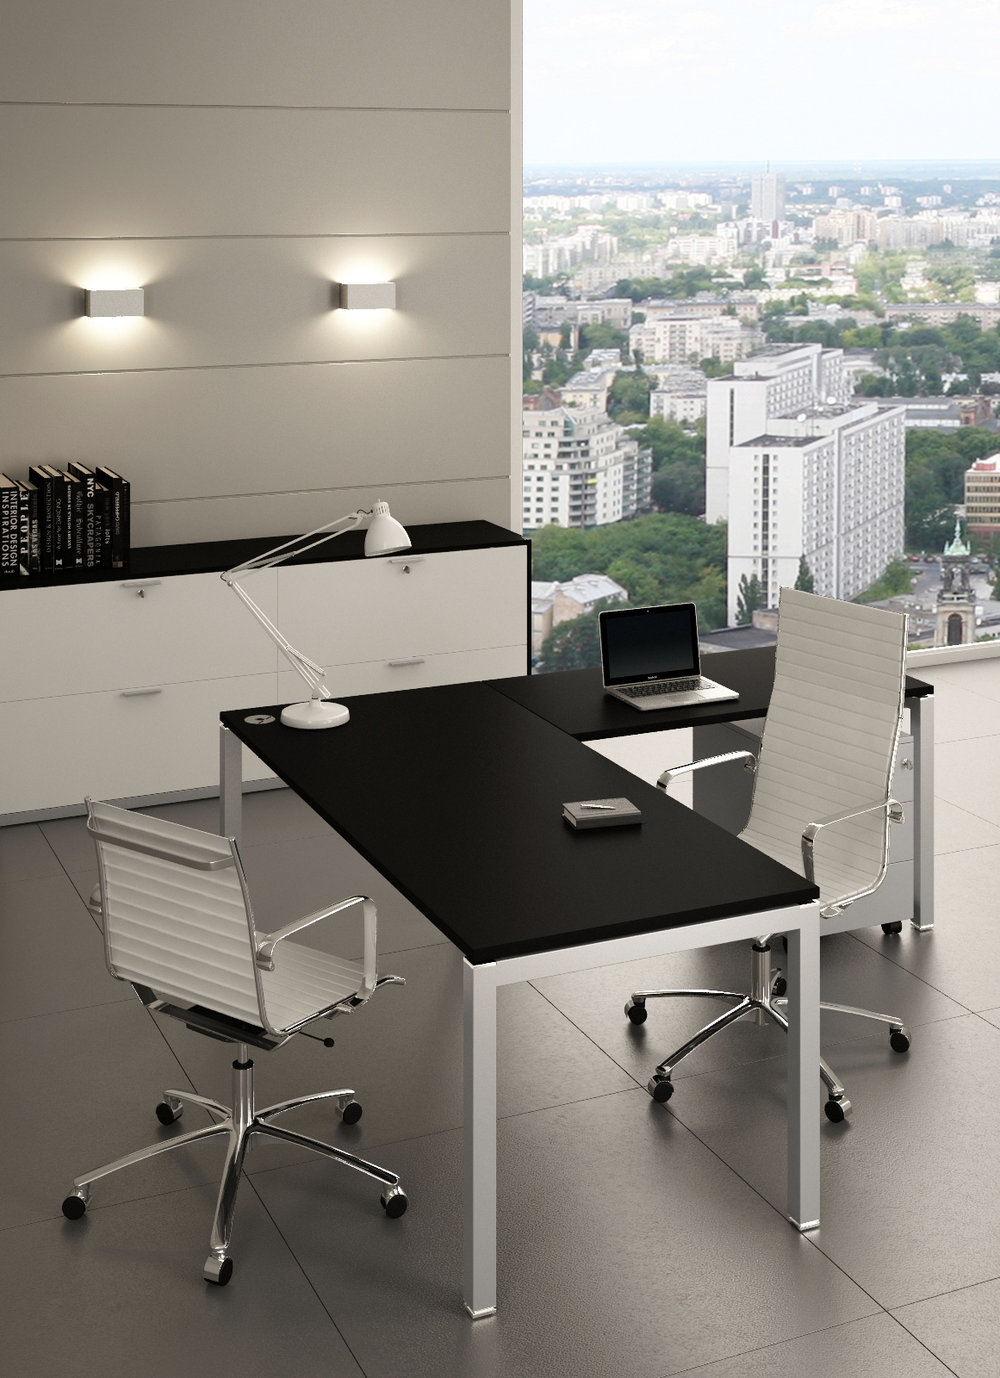 Italy for less. - Gate is our best priced Italian line. It offers an array of linear extendible islands and workstations that can be joined together to create efficient, practical and contemporary offices so you can come together when you need to.Starting at $999.